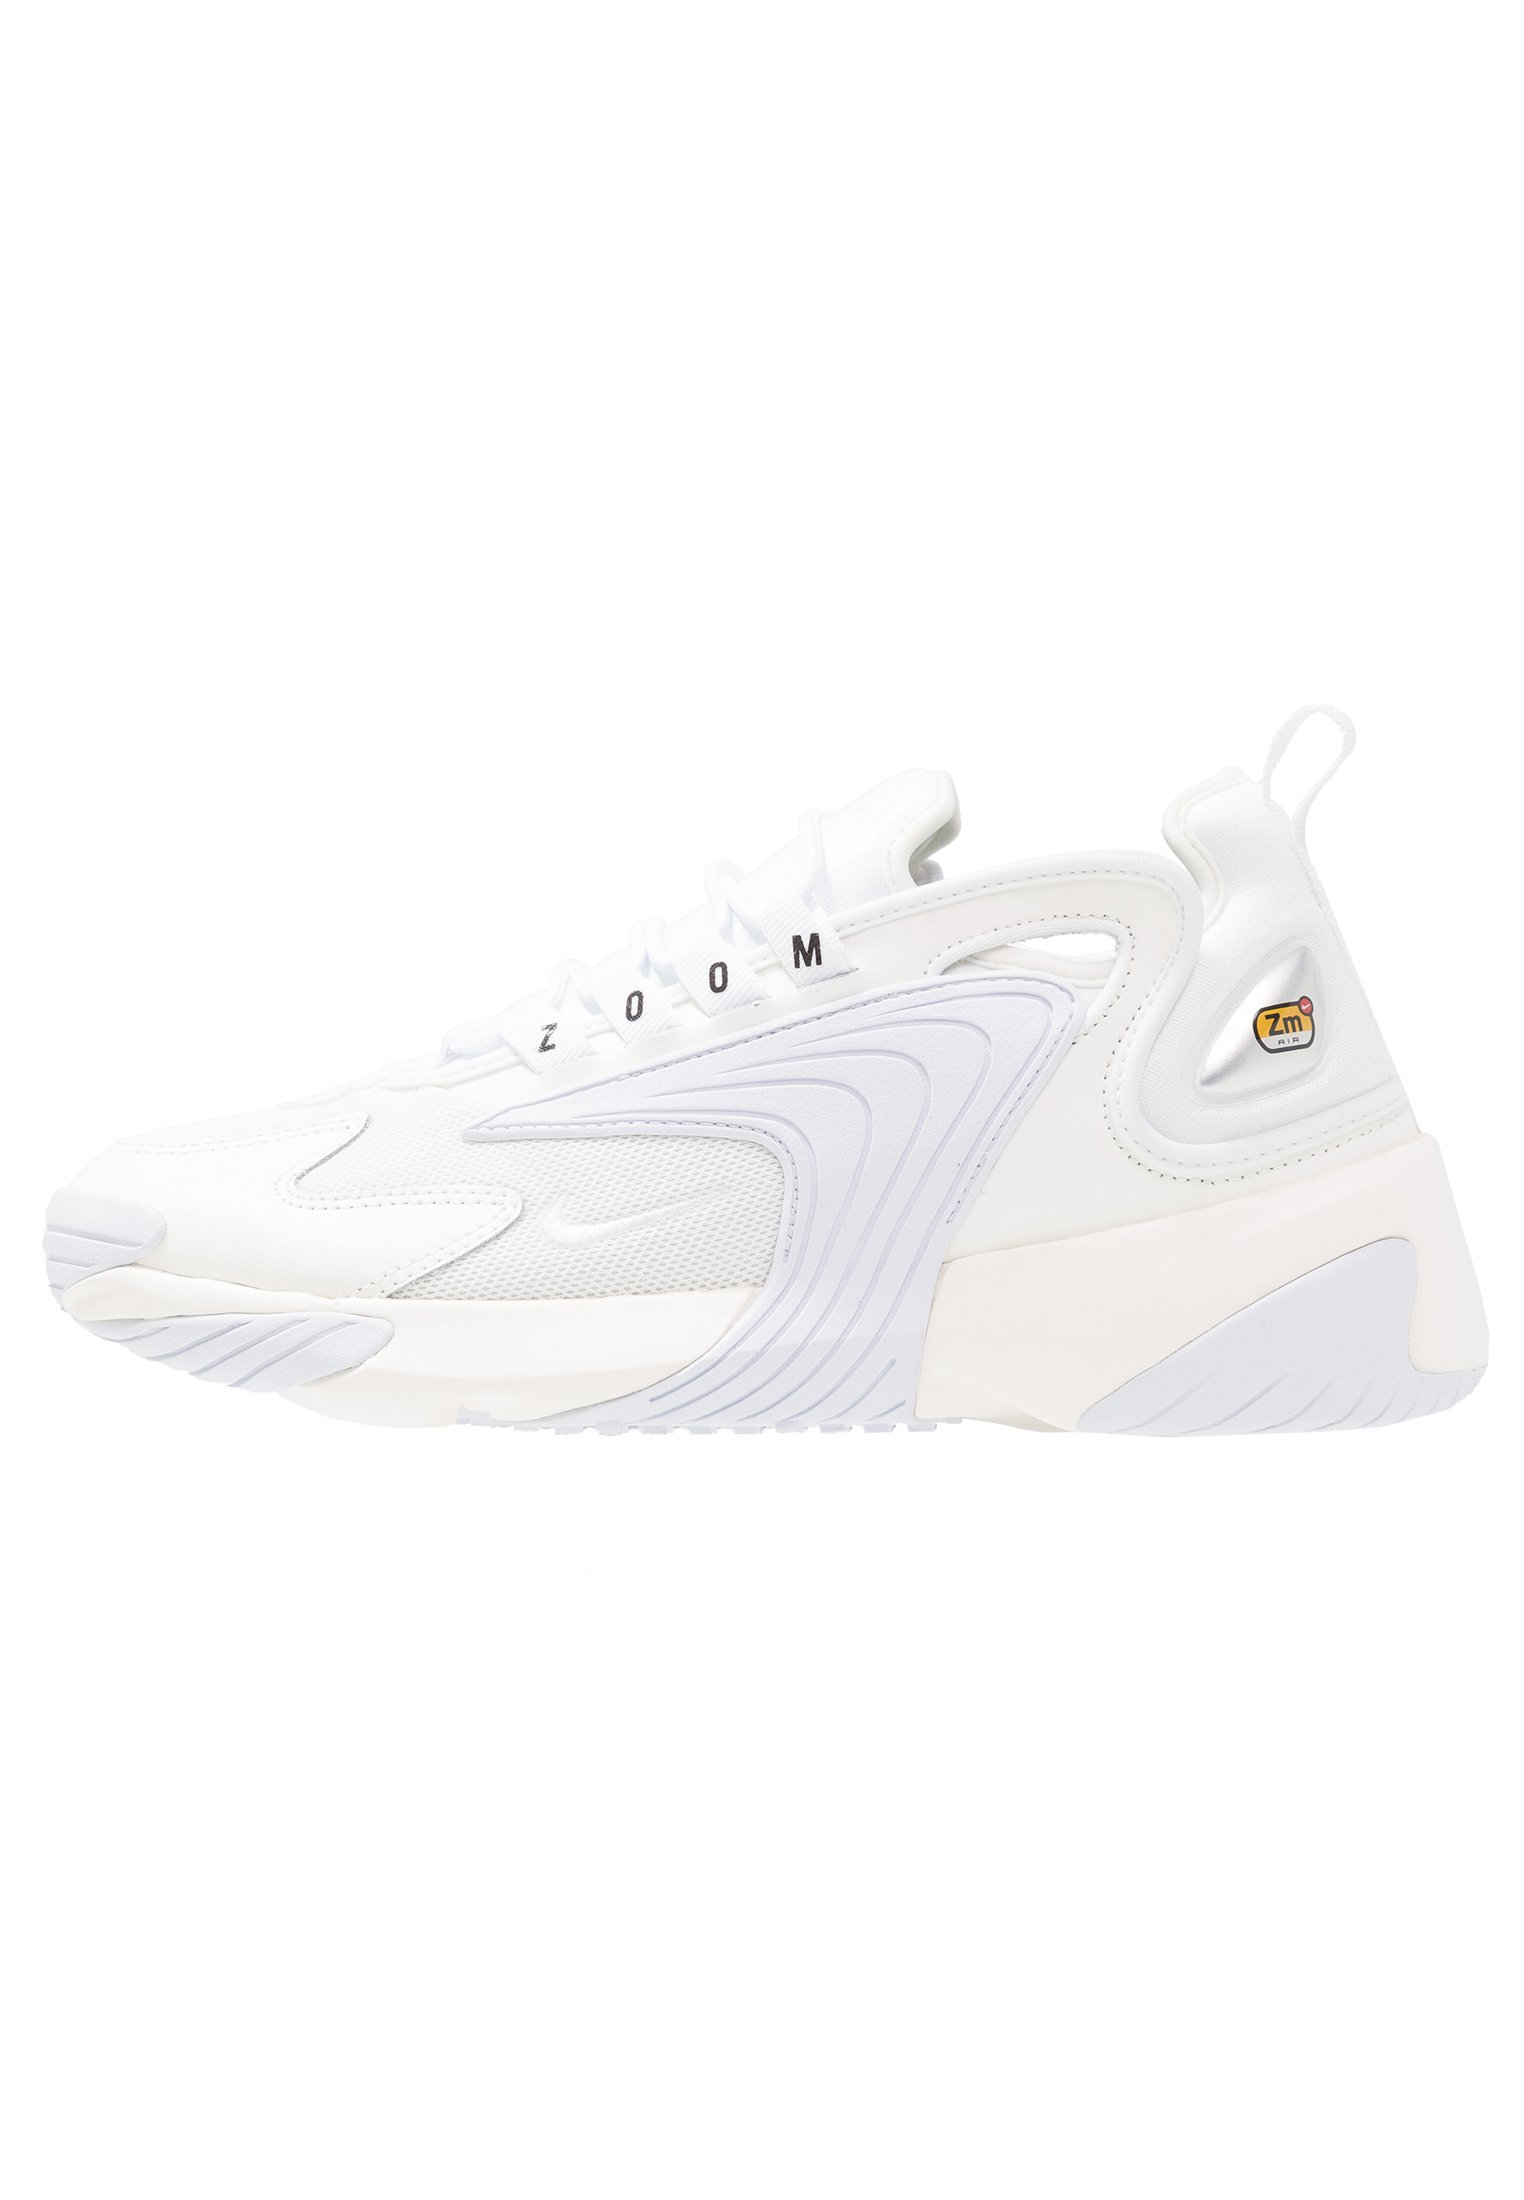 ZOOM 2K Baskets basses sailwhiteblack